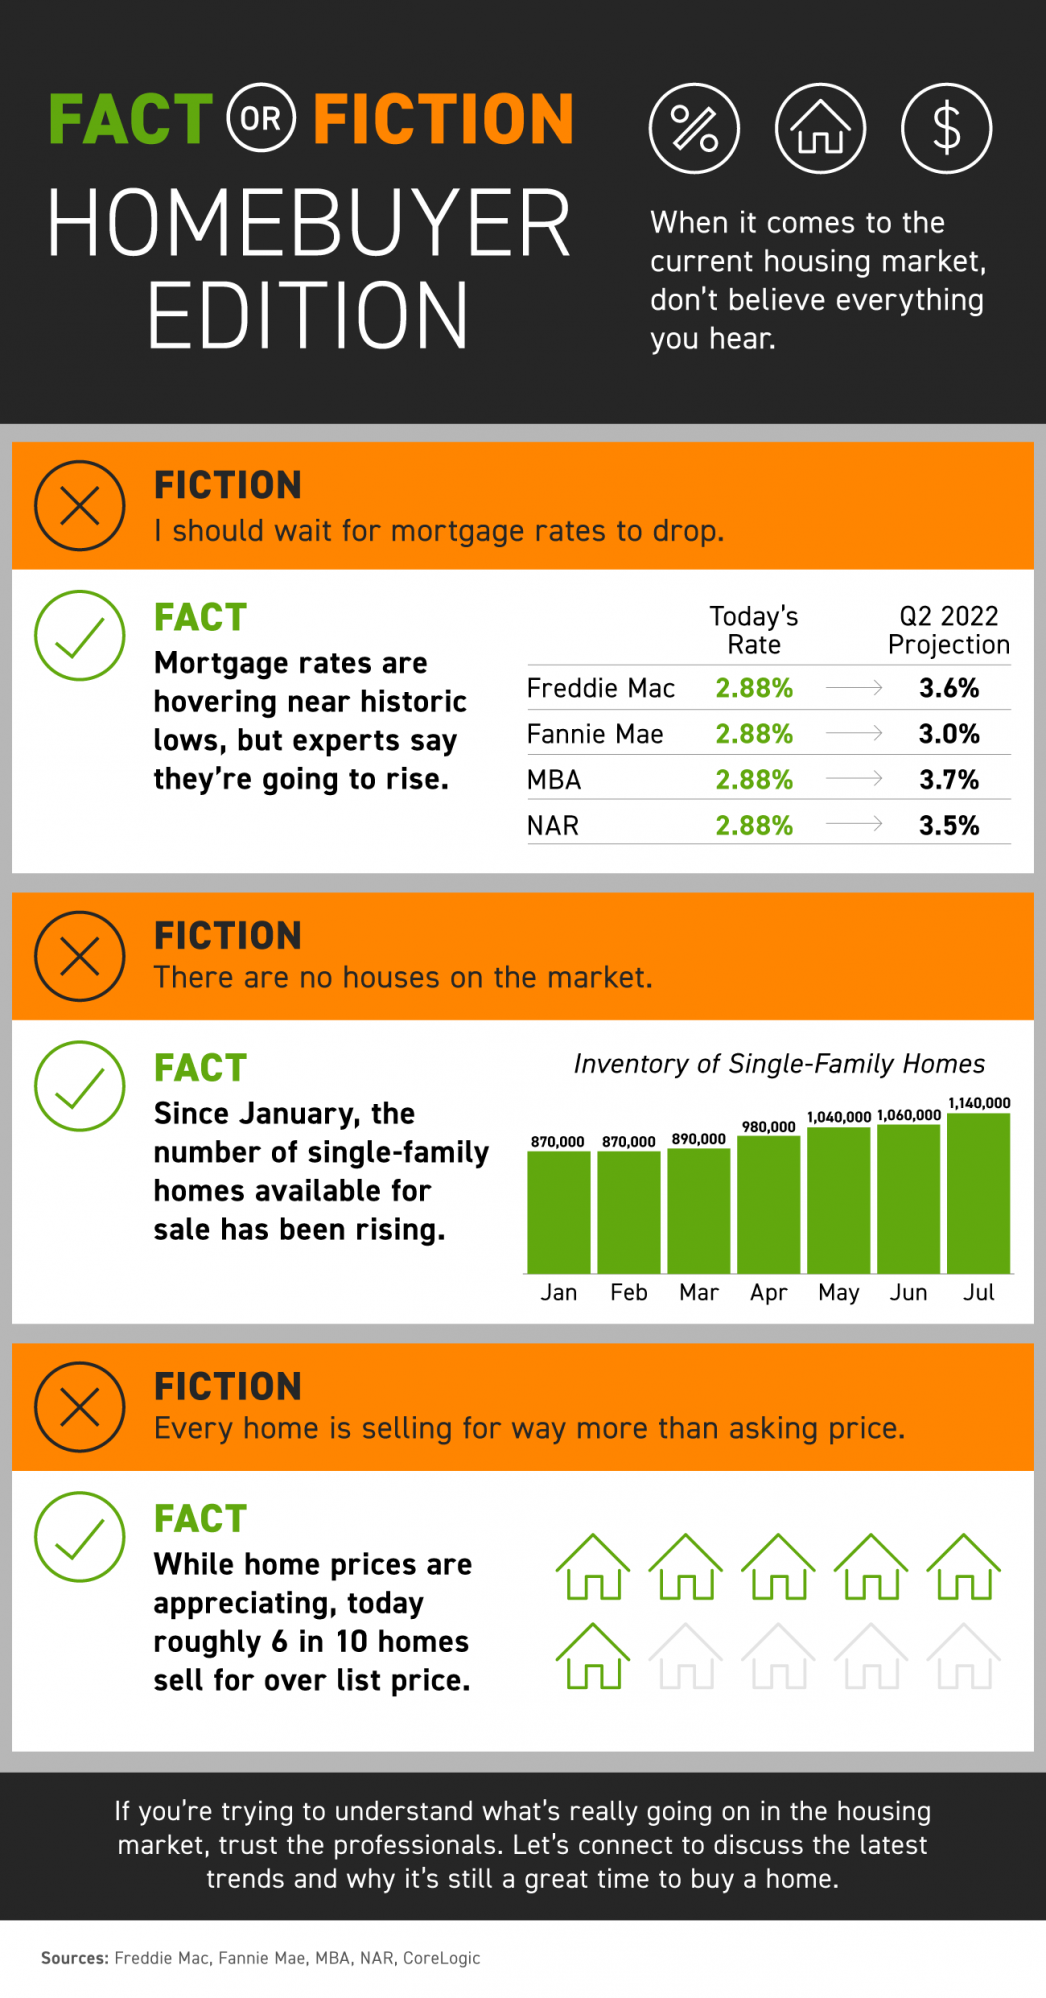 Fact or Fiction: Homebuyer Edition [INFOGRAPHIC]   MyKCM